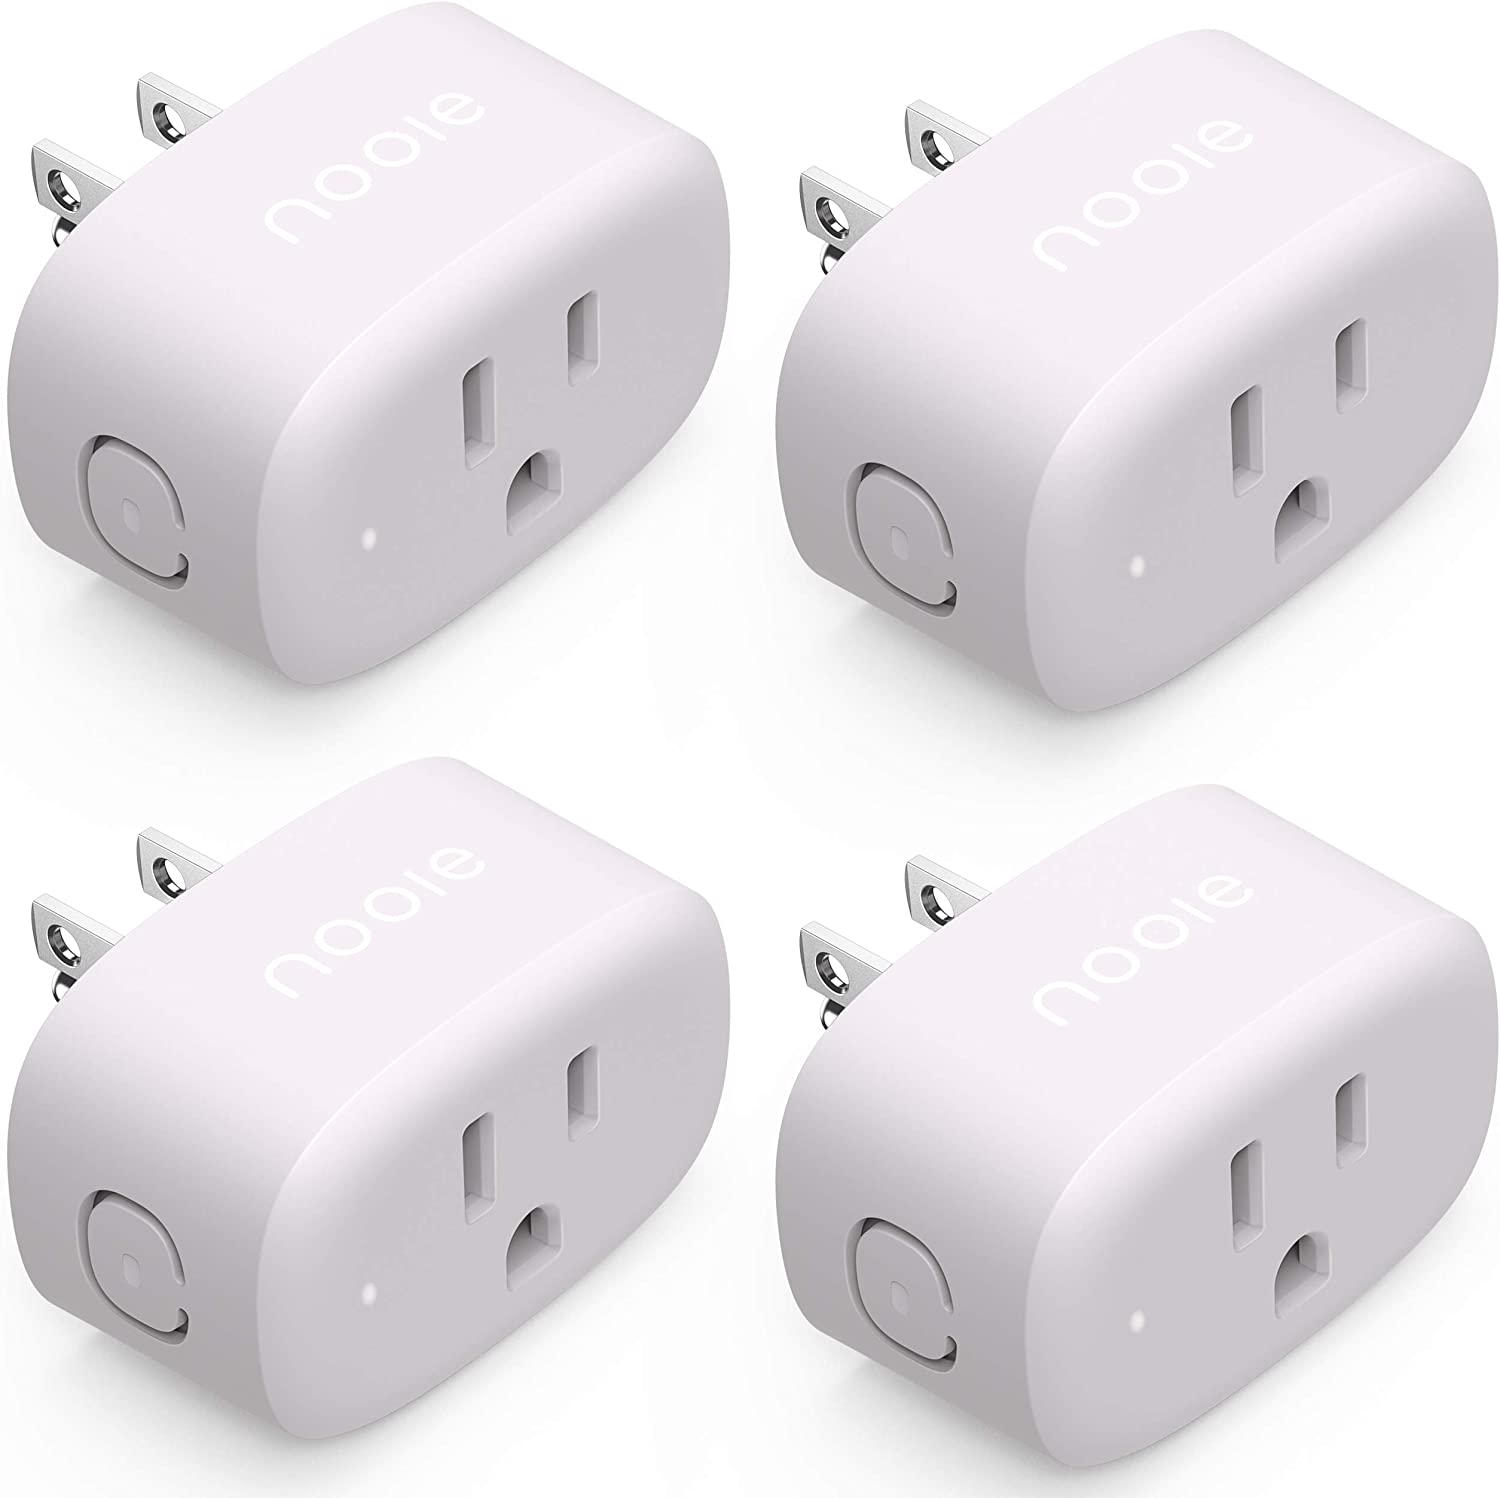 Nooie Smart Plug Works with Alexa Google Home for Voice Control WiFi Mini Smart Outlet with Schedule Timer Child Lock Function and ETL Certified No Hub Required, 4 Packs